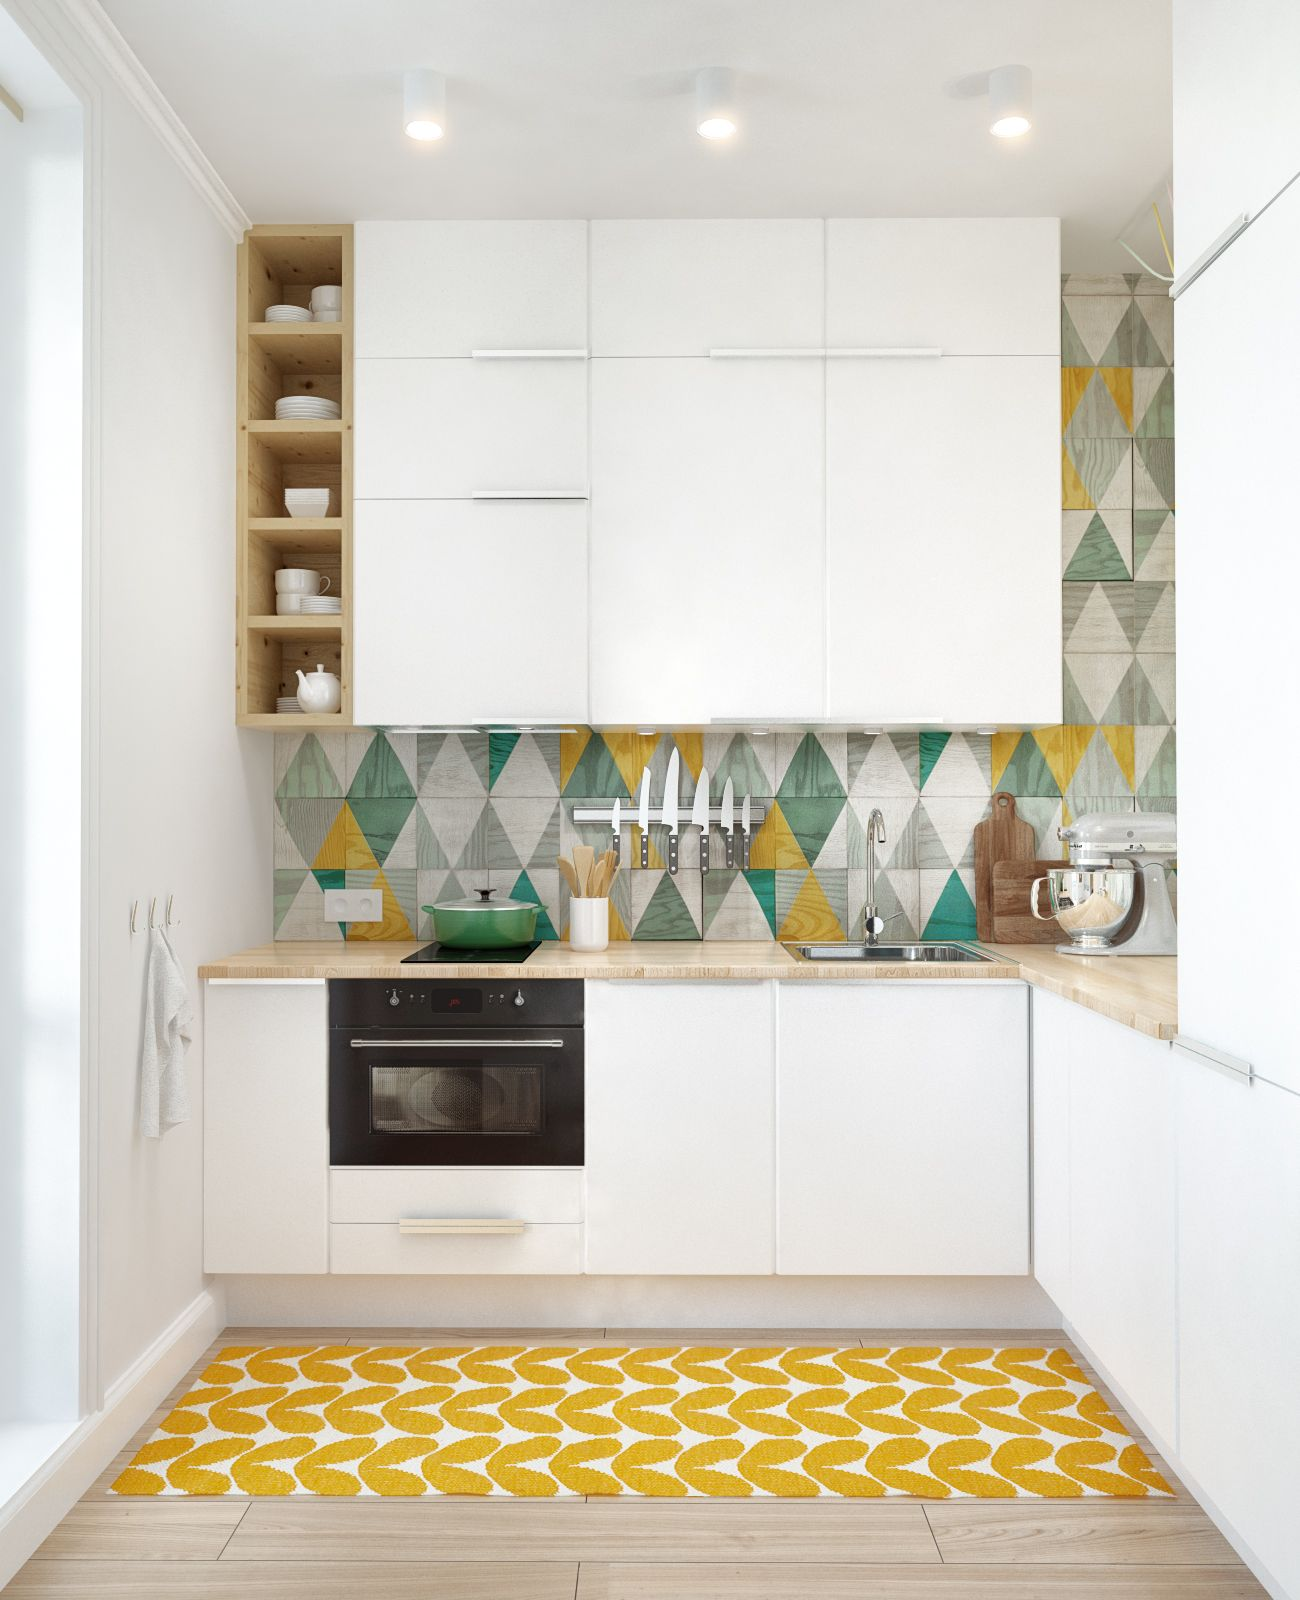 8-small-kitchen-home-design-with-white-corner-kitchen-ideas-and-wall-kitchen-container